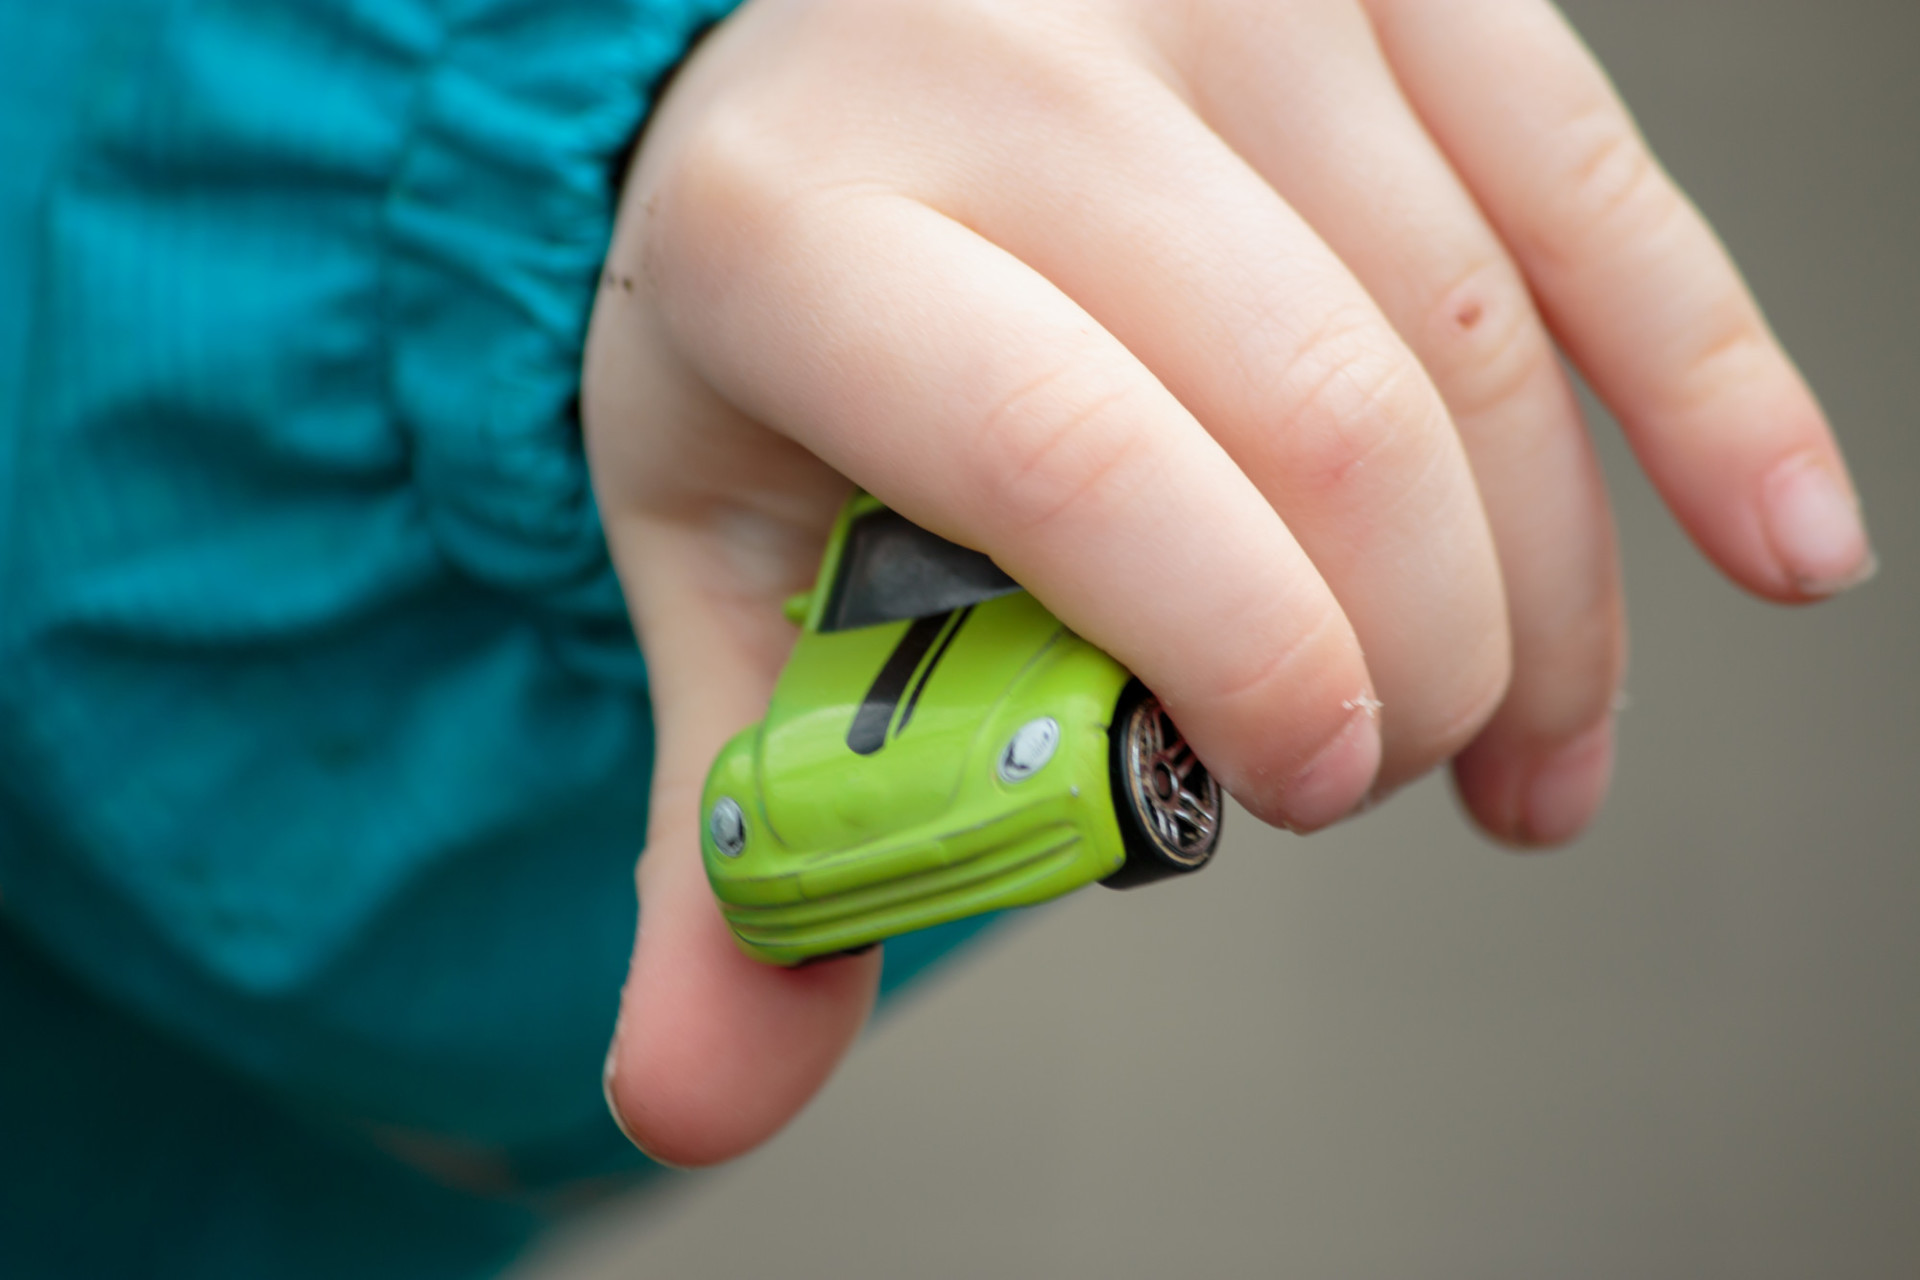 Child holding toy car in hand